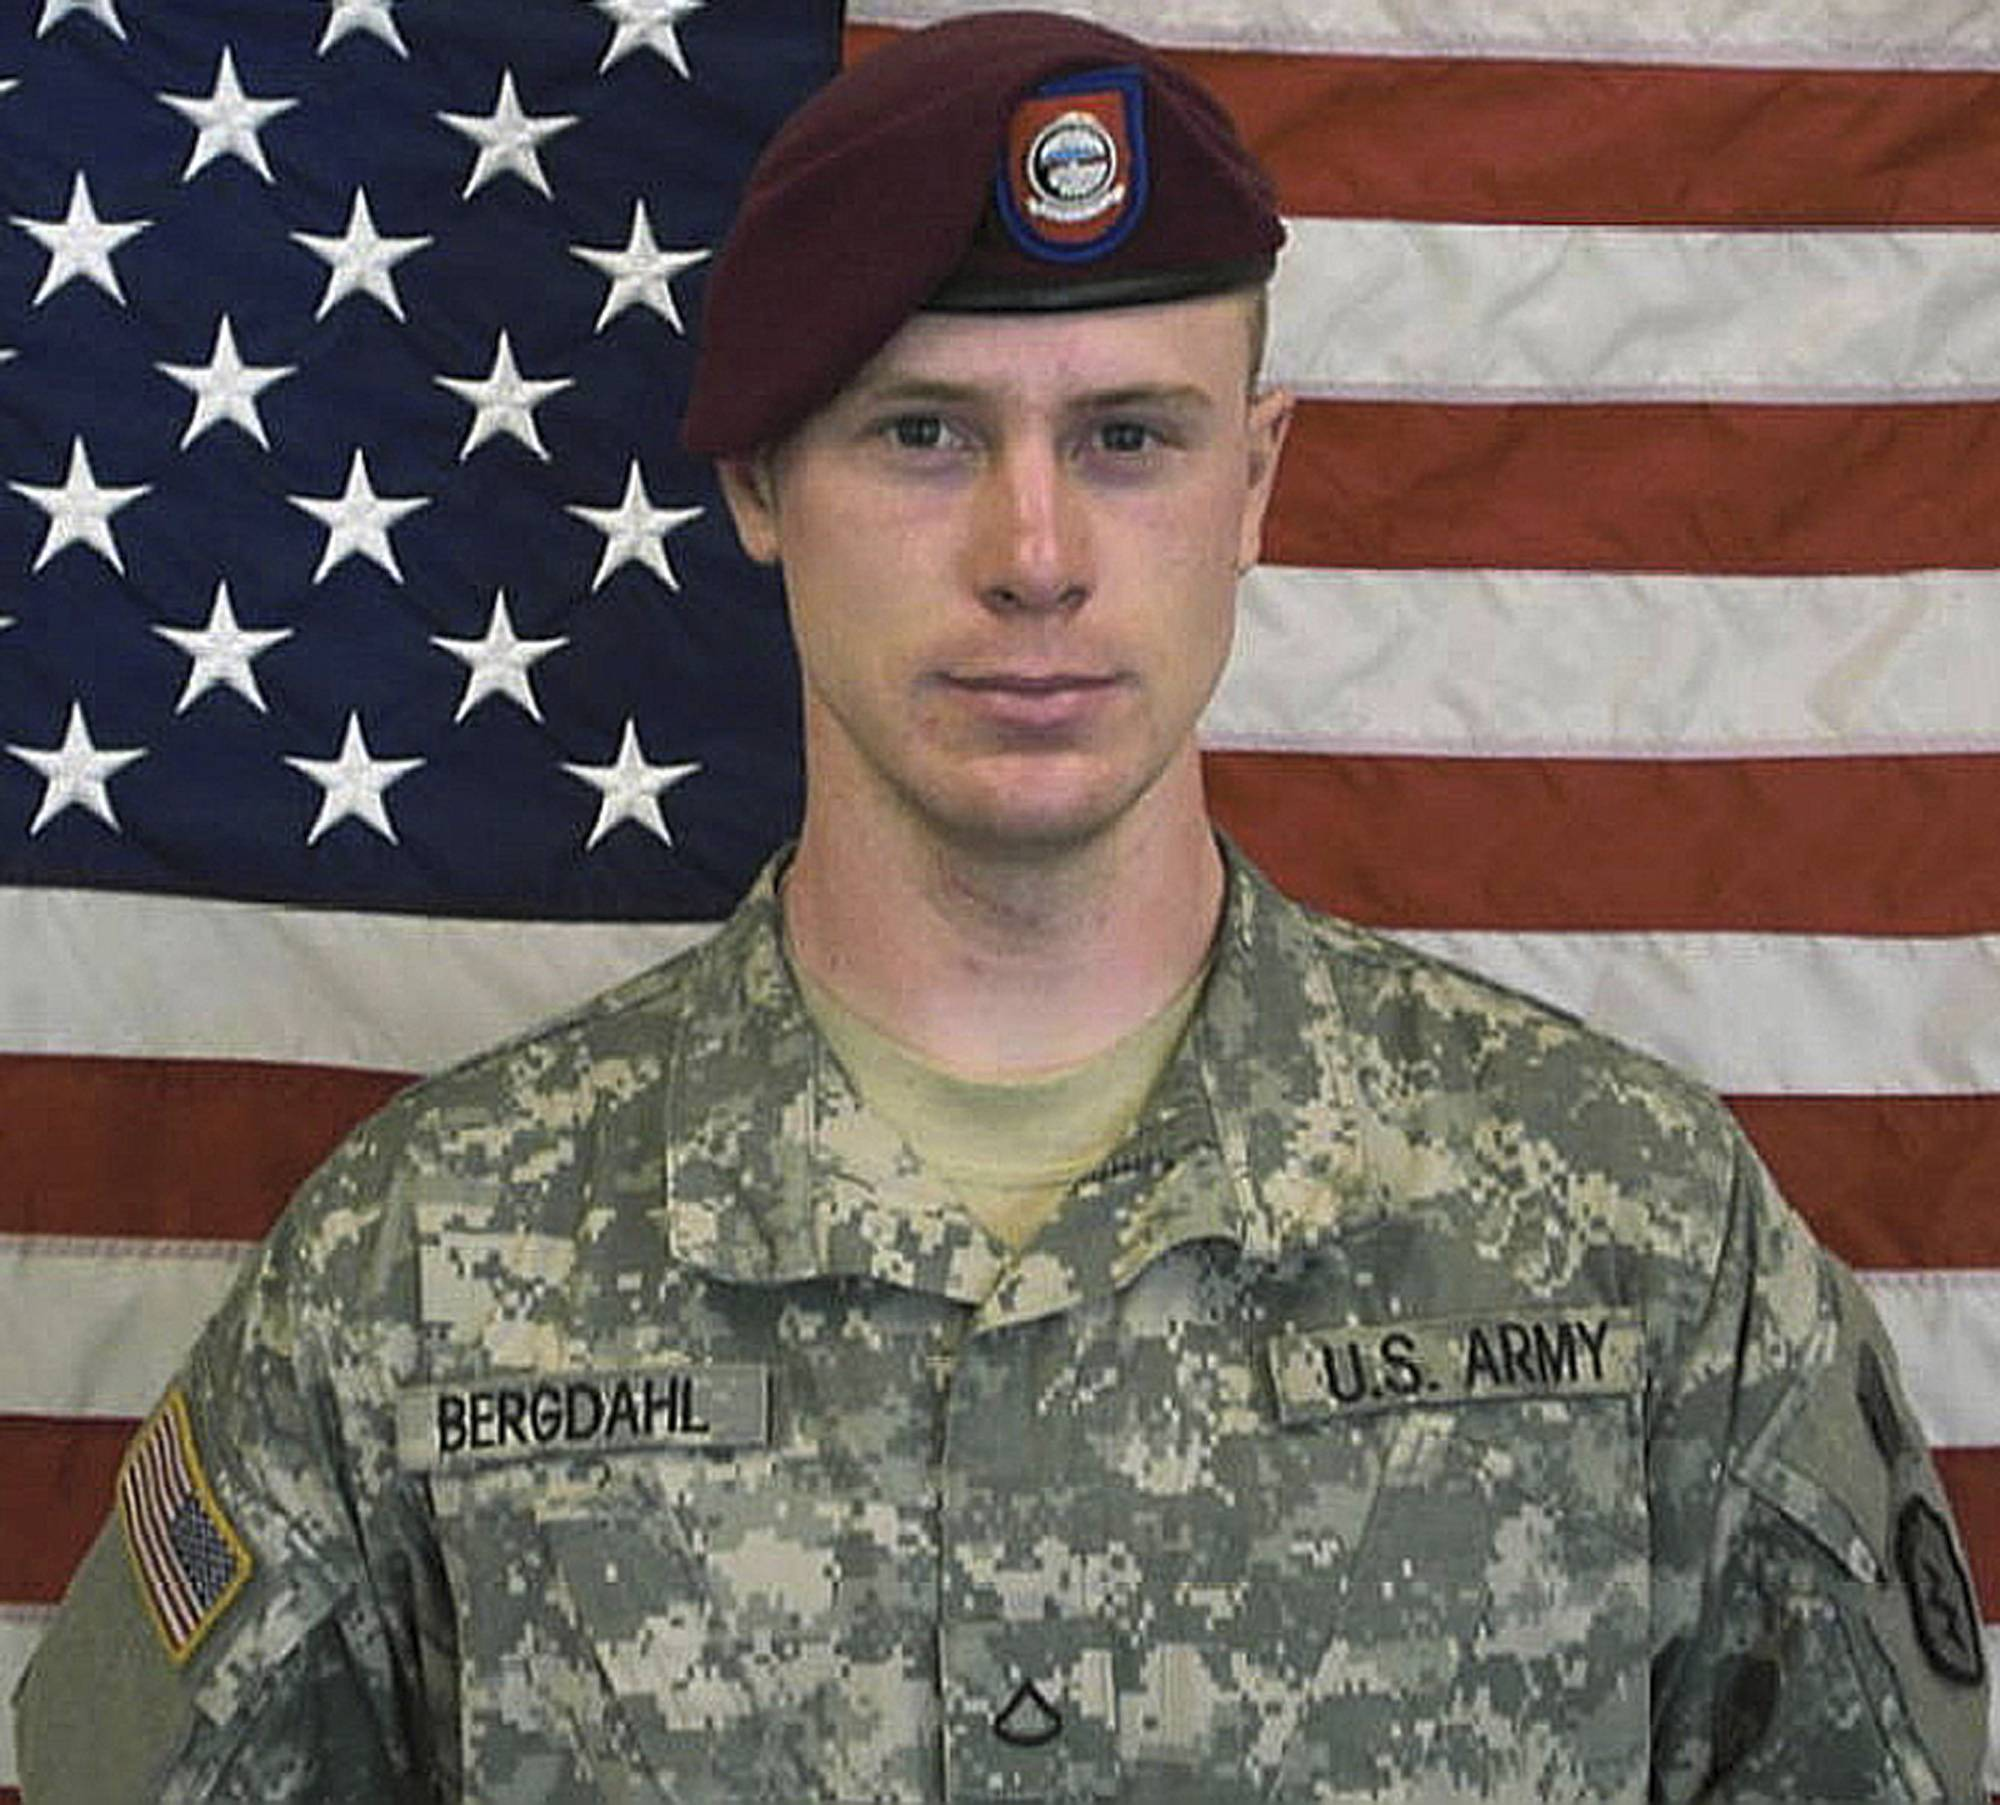 A Pentagon investigation concluded in 2010 that Army Sgt. Bowe Bergdahl walked away from his unit, and after an initial flurry of searching, the military decided not to exert extraordinary efforts to rescue him.